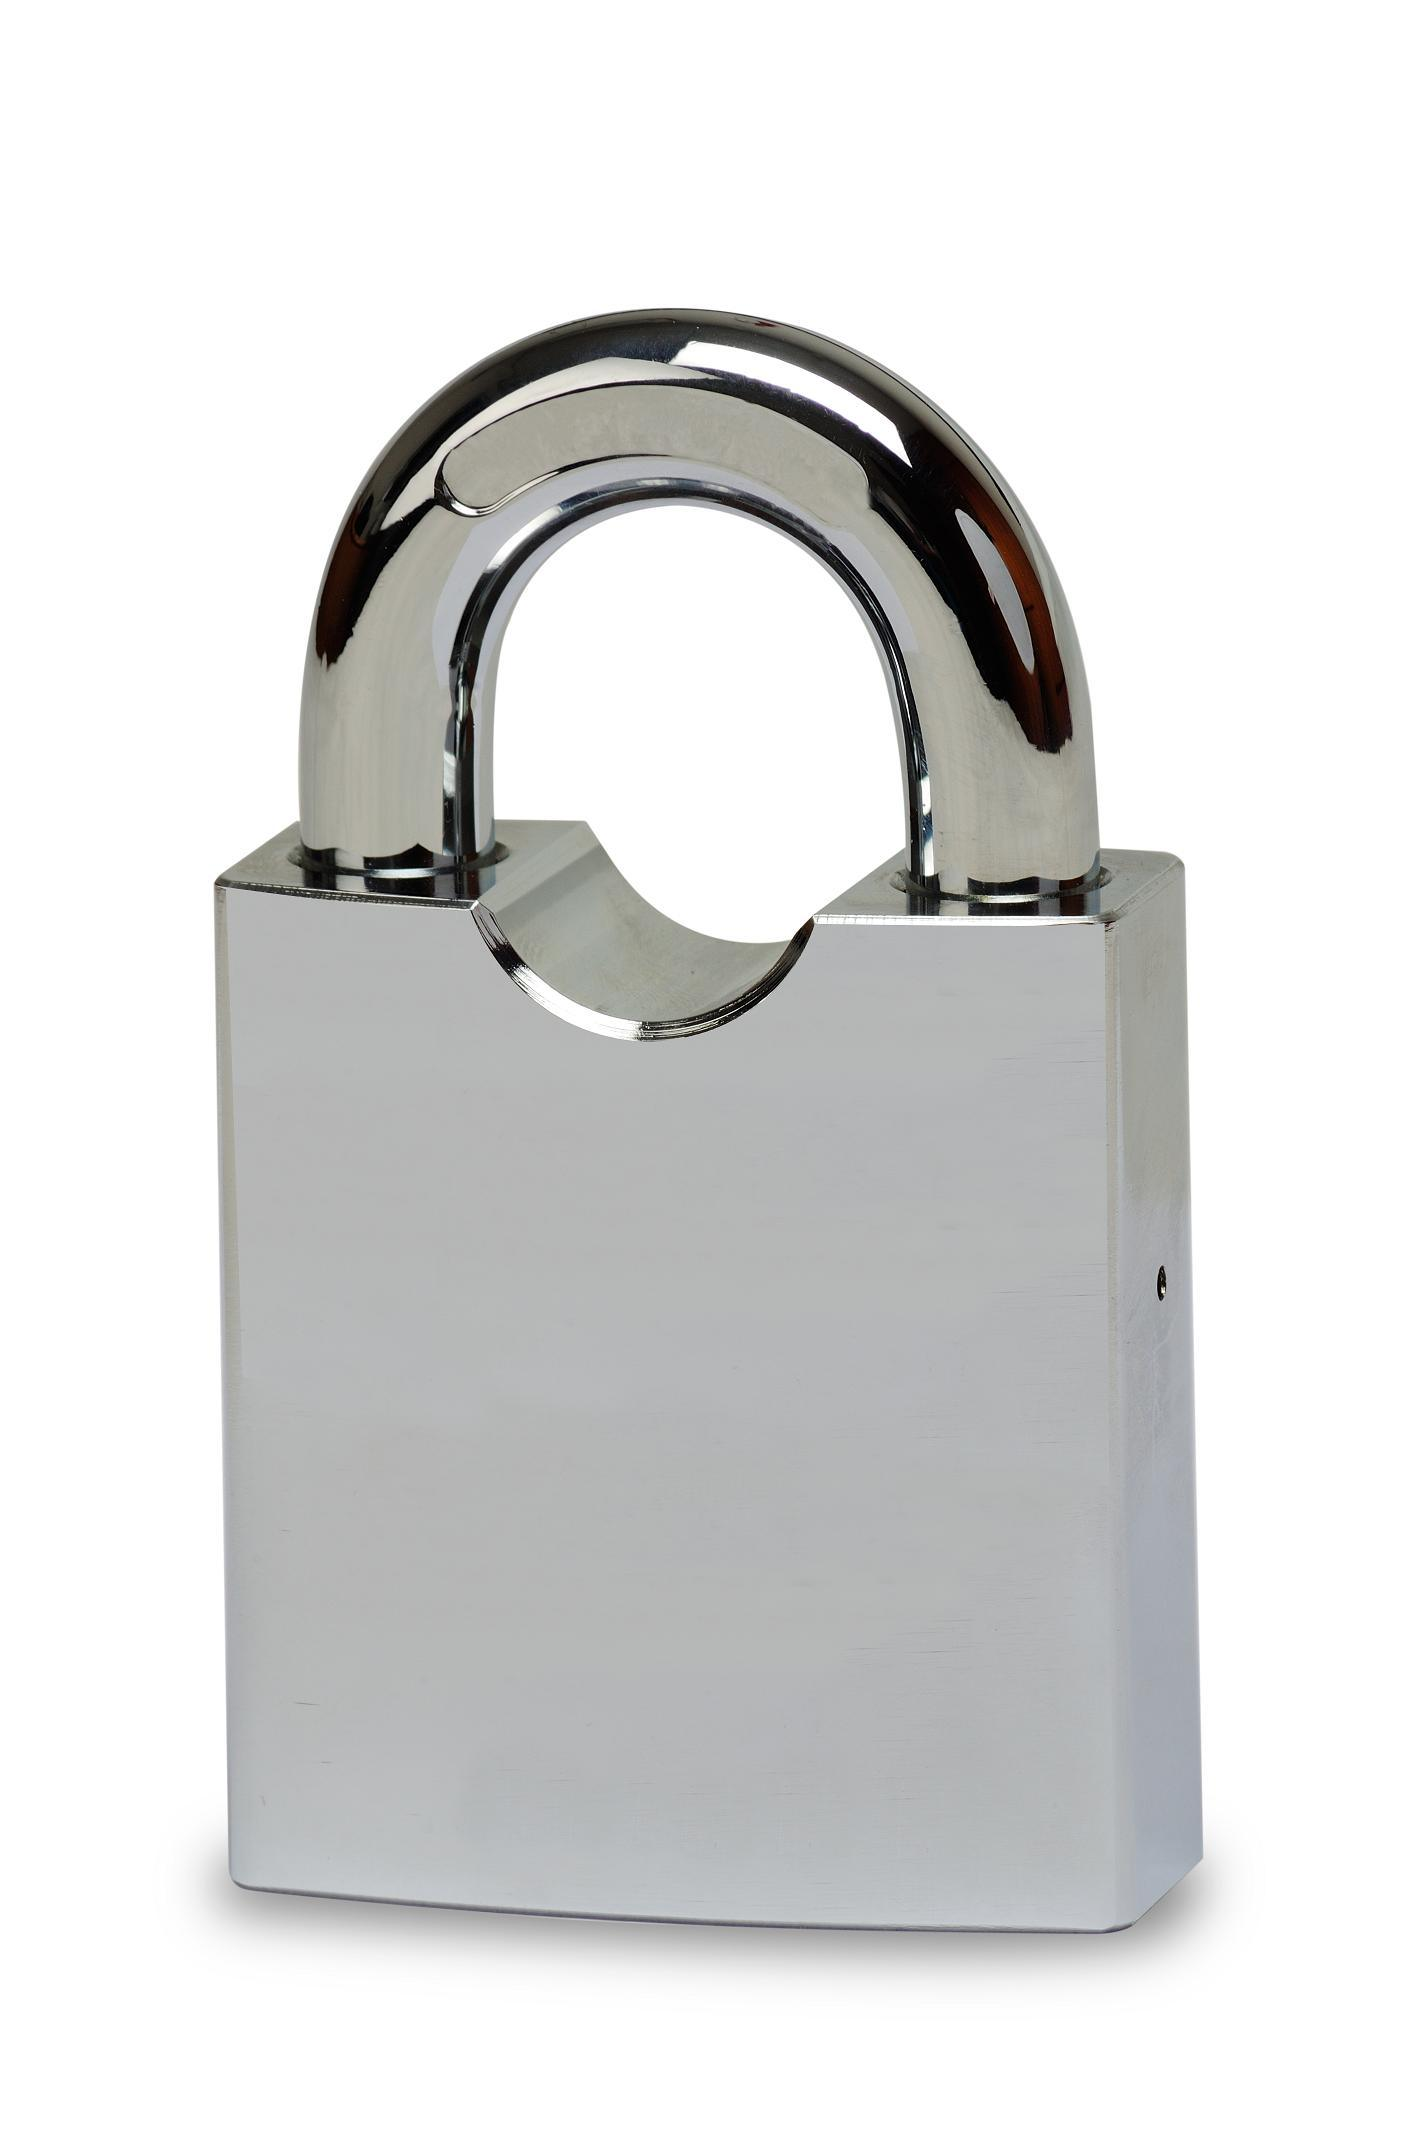 Strong Padlock for Industrial Application